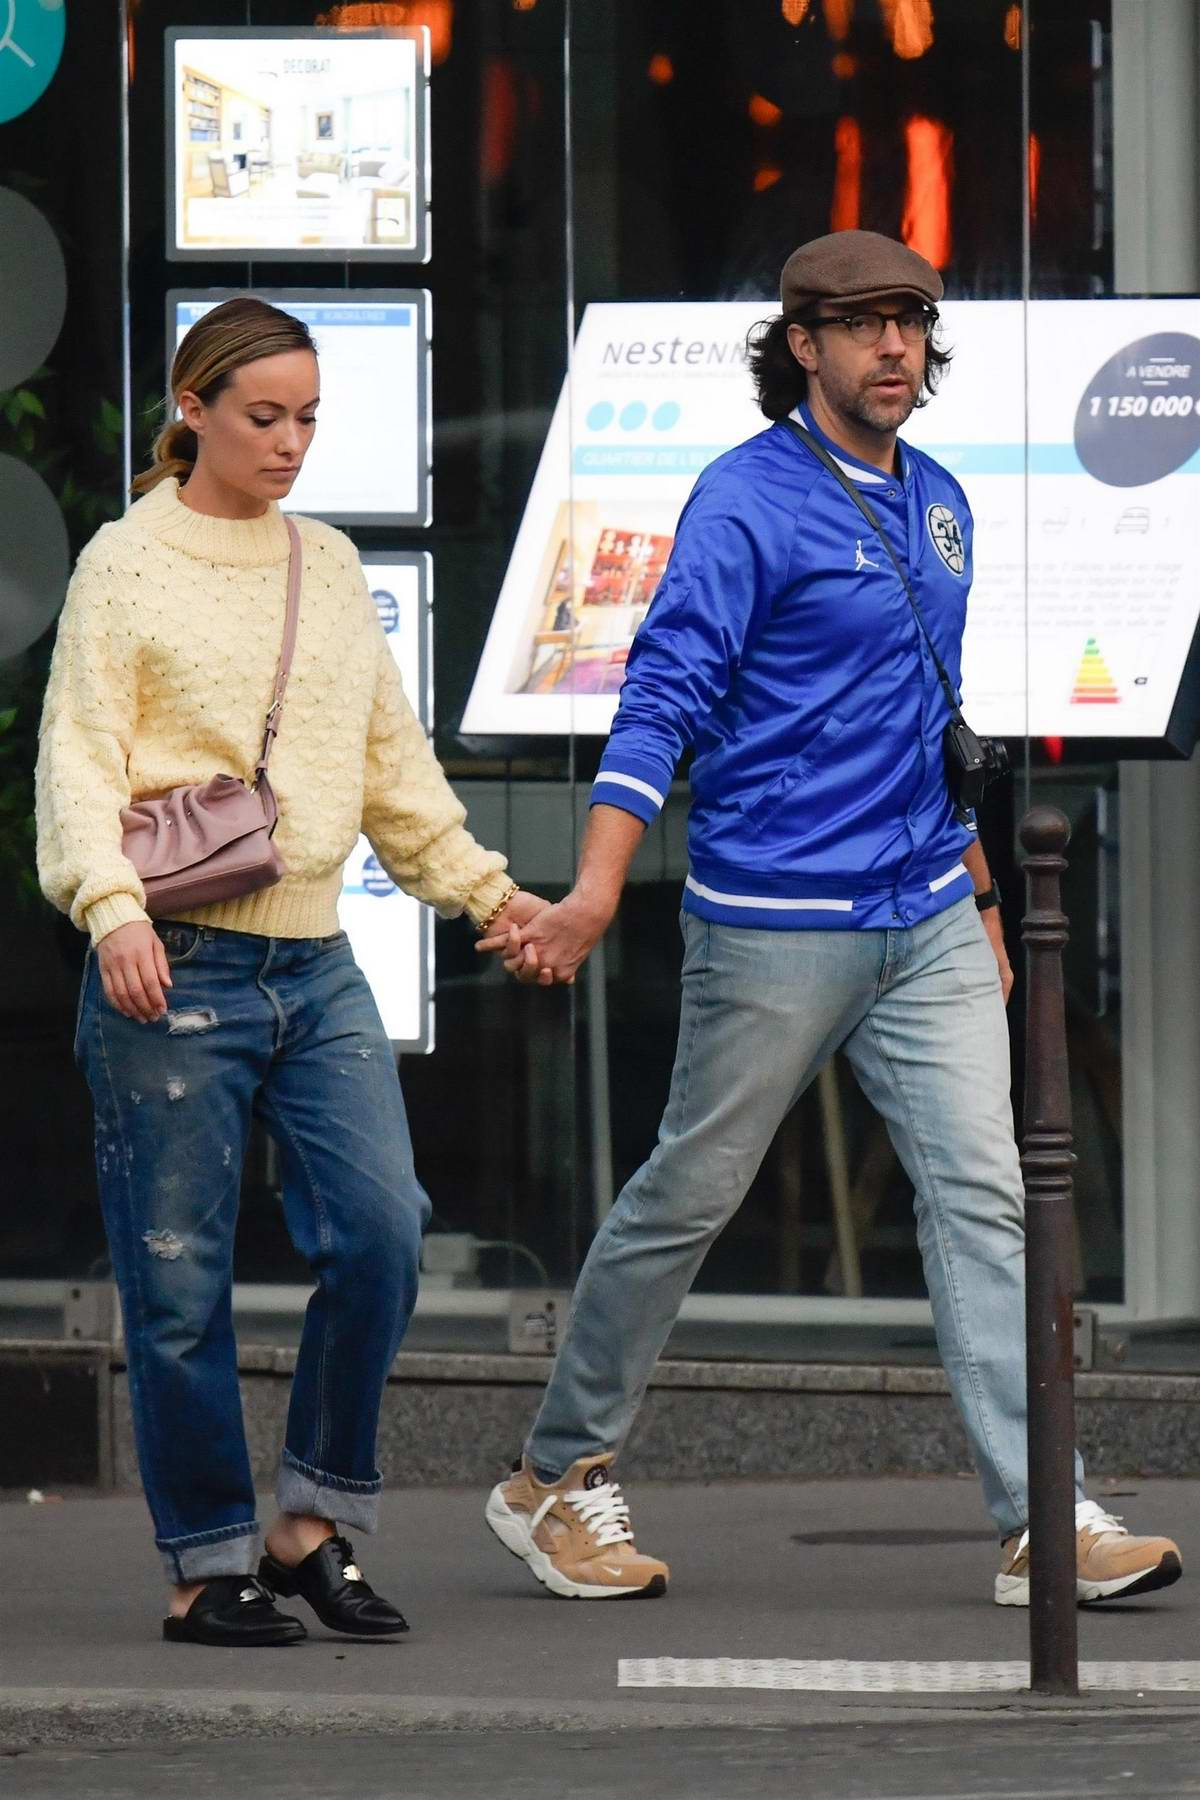 Olivia Wilde And Jason Sudeikis Walk Hand In Hand While Wandering The Streets Of Paris France 300918 5